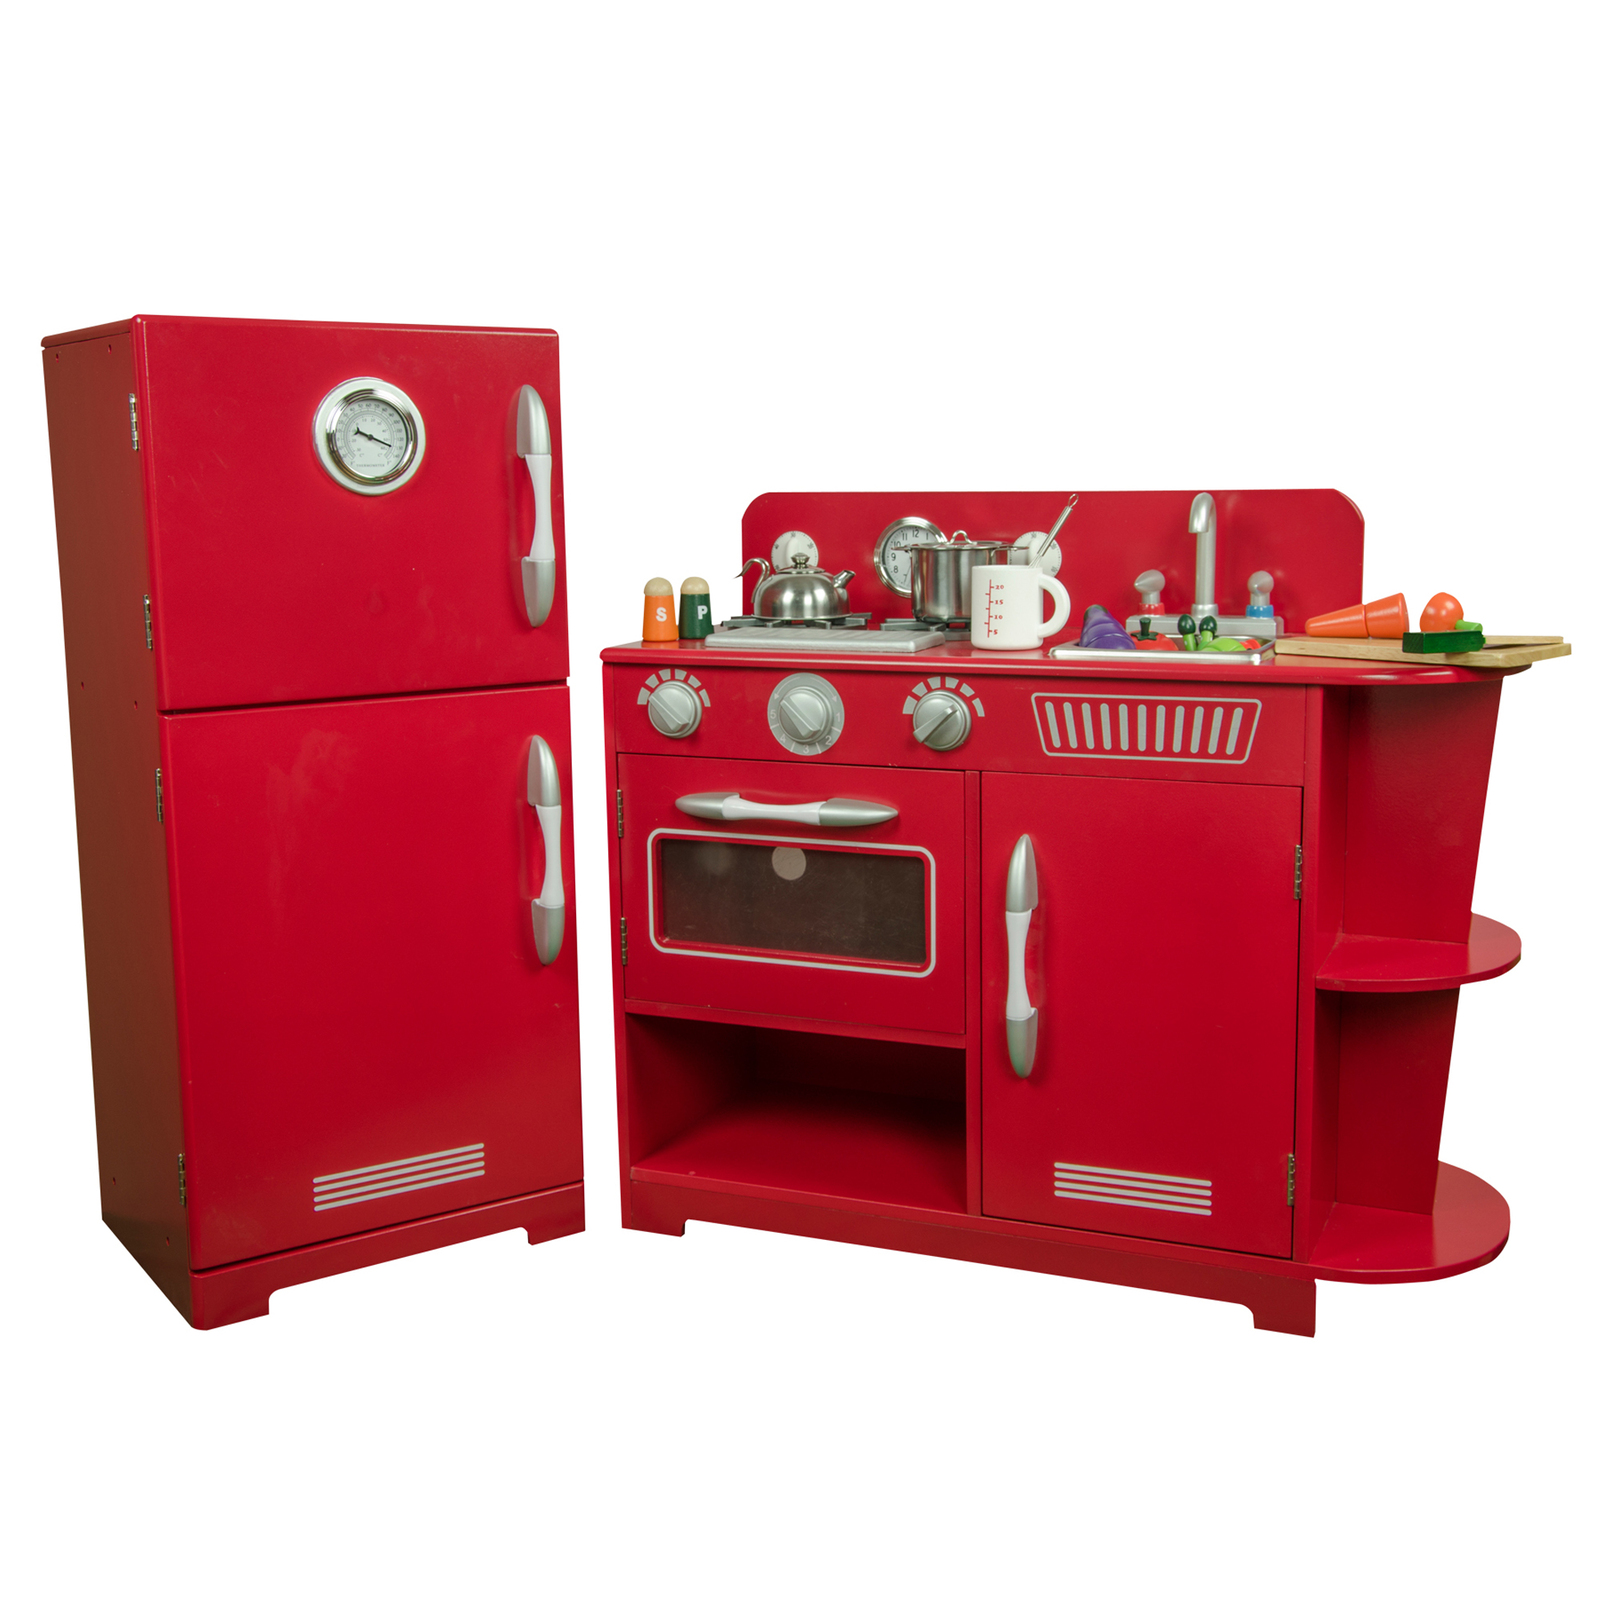 Teamsson Kids 2 piece Red Play Kitchen